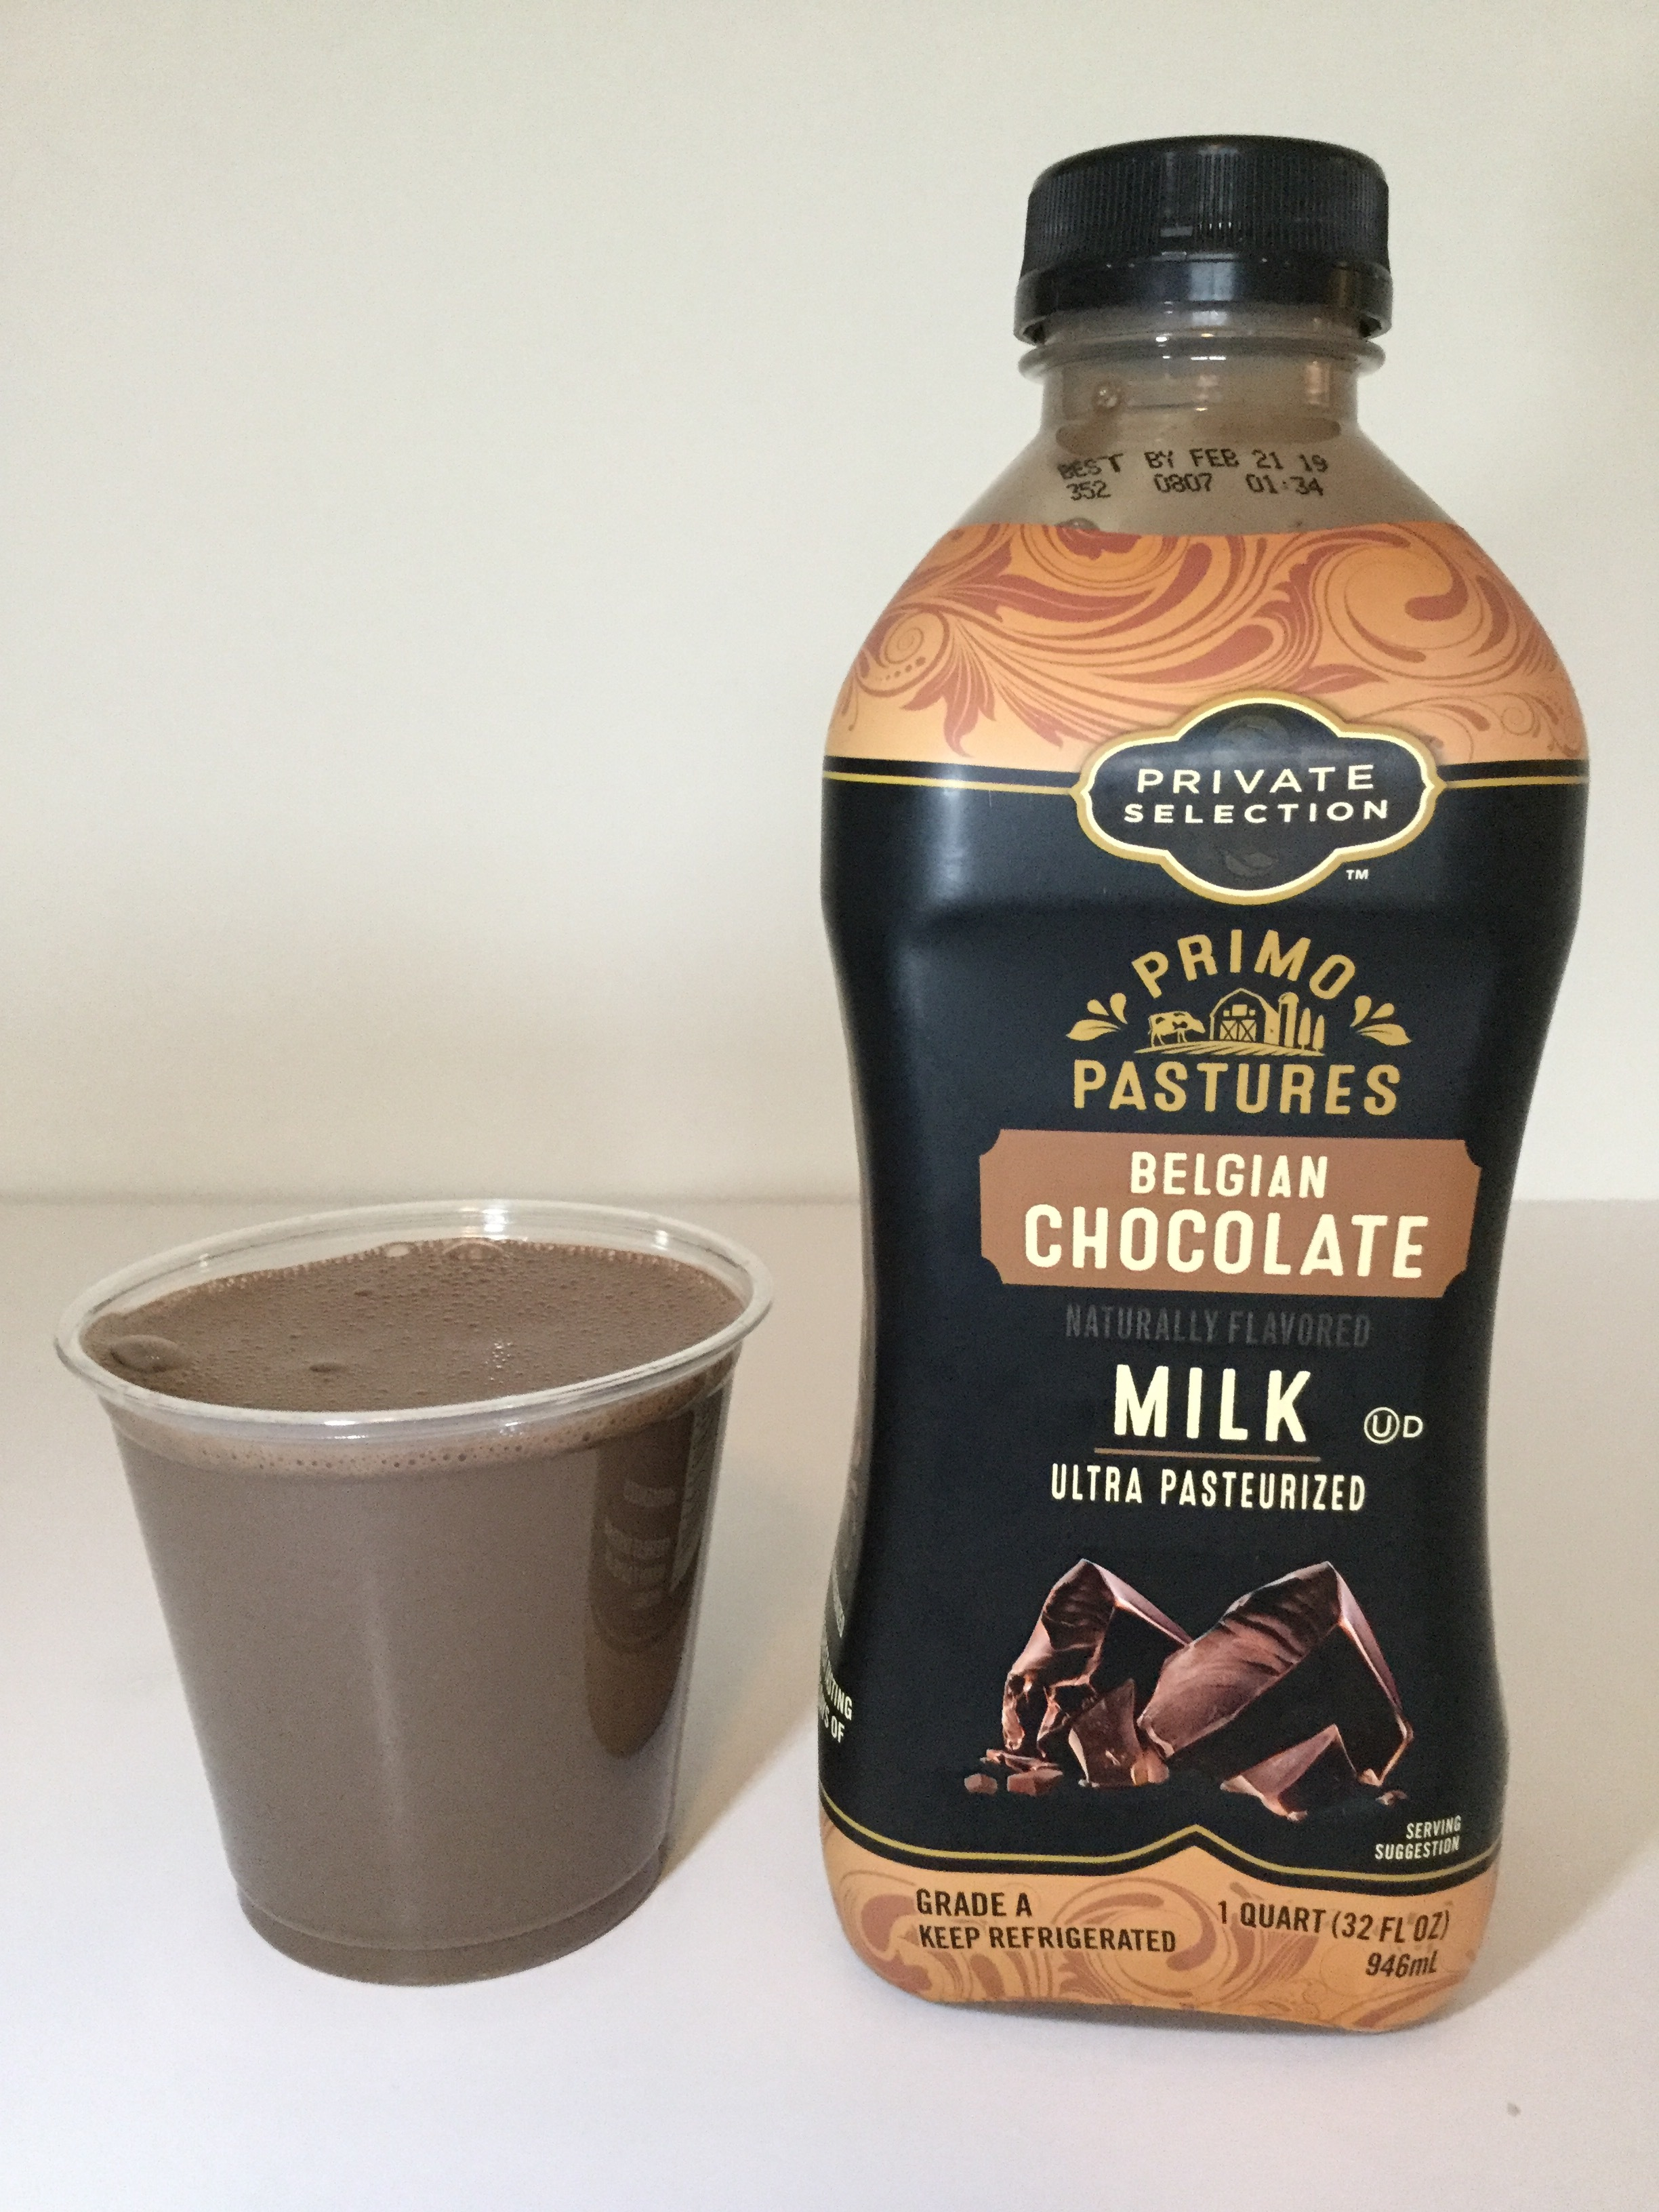 Kroger Private Selection Primo Pastures Belgian Chocolate Milk Cup